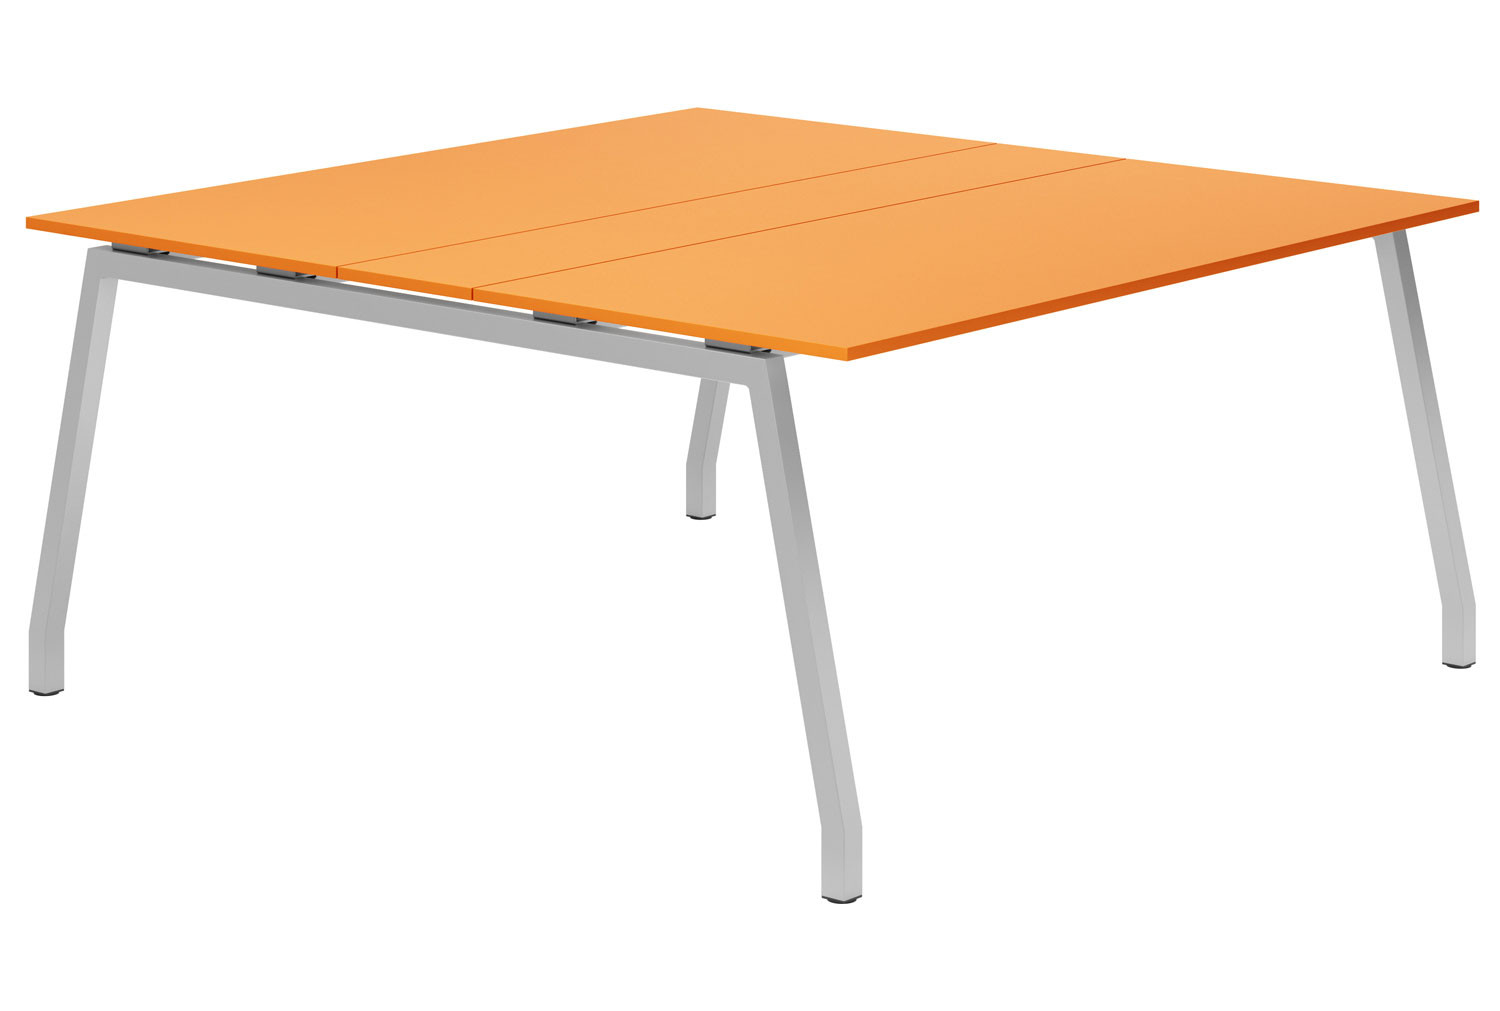 Campos A-Frame 6-8 Person Meeting Table (Orange)